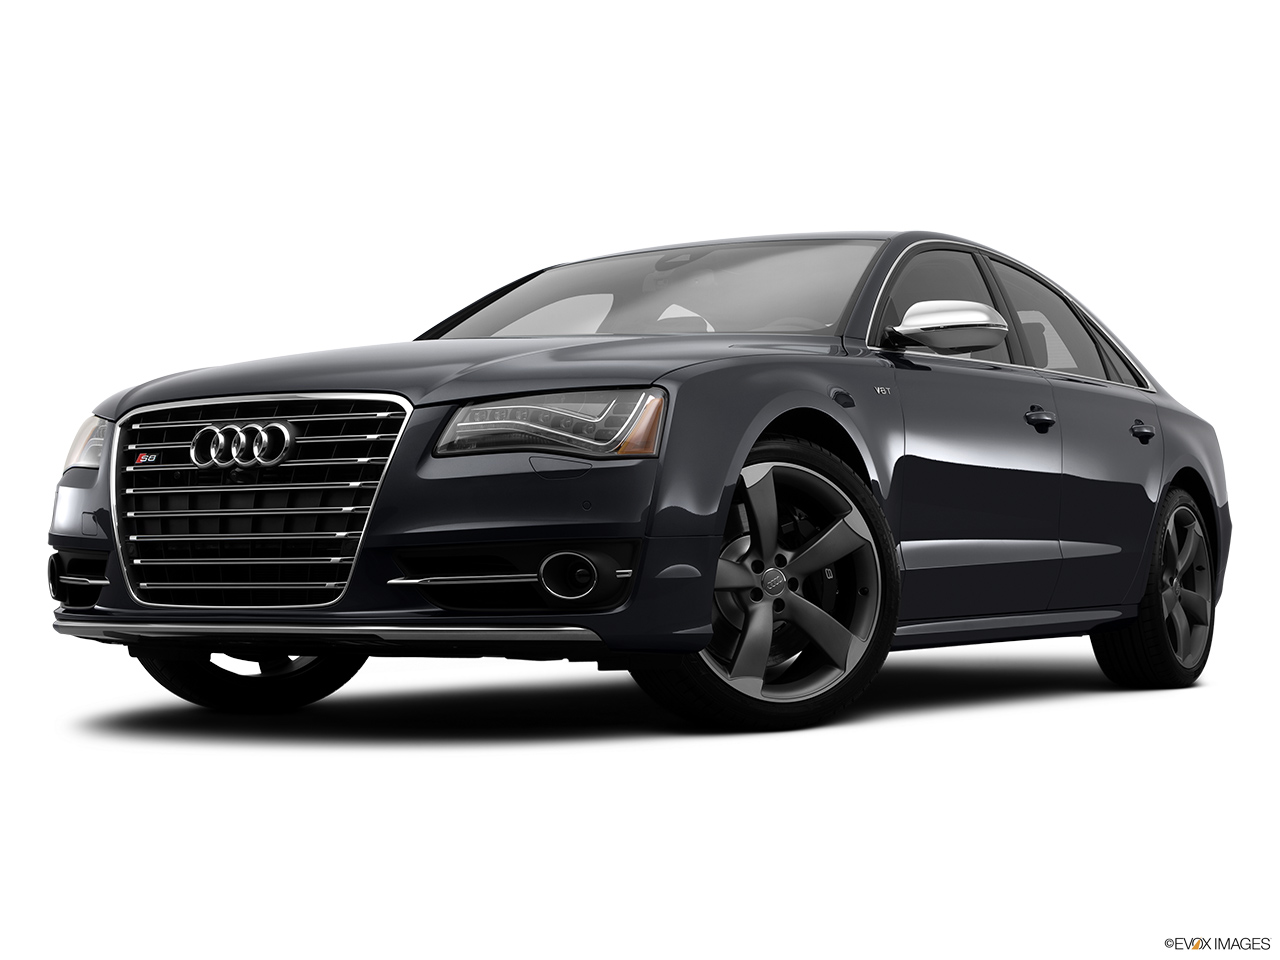 2014 Audi S8 4.0 TFSI Front angle view, low wide perspective.